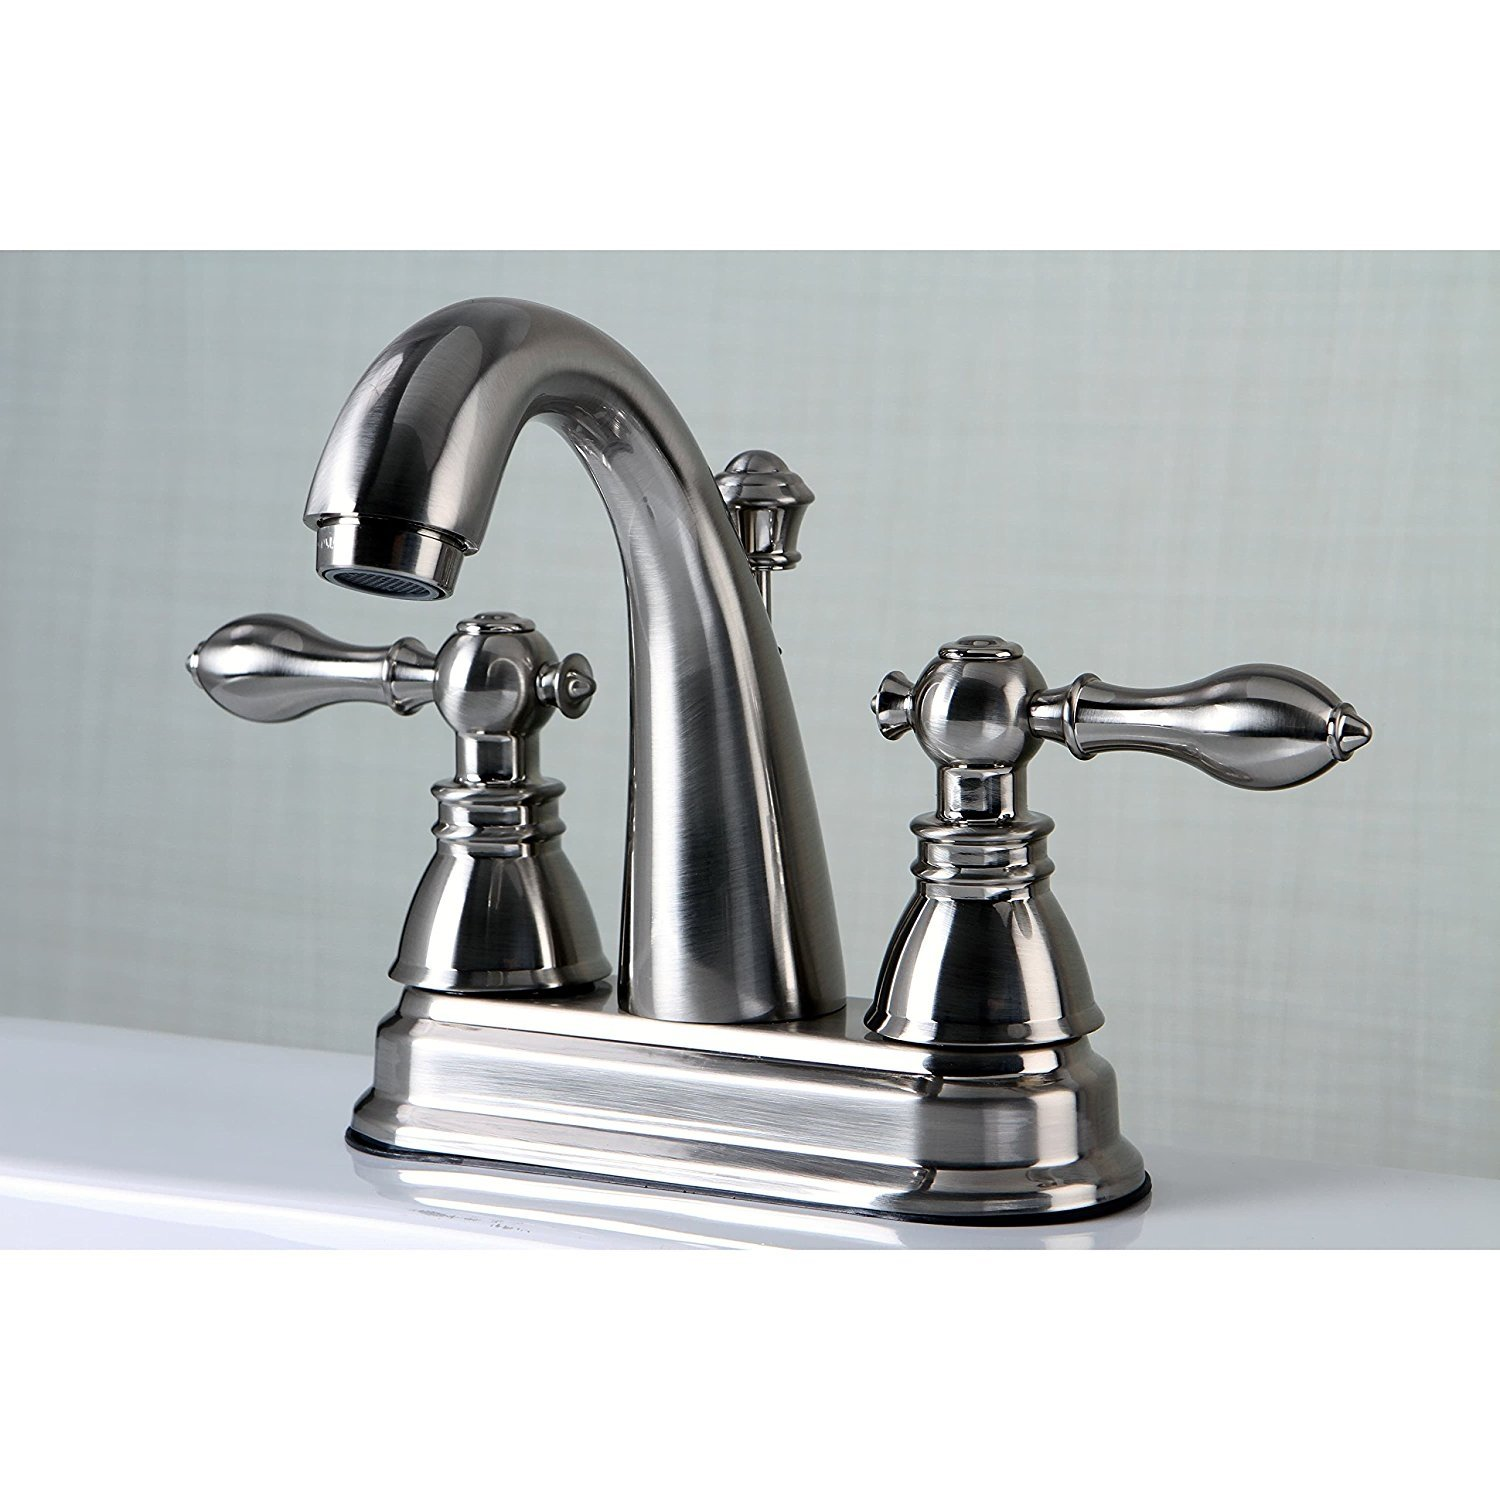 Kingston Brass American Classic Satin Nickel Bathroom Faucet